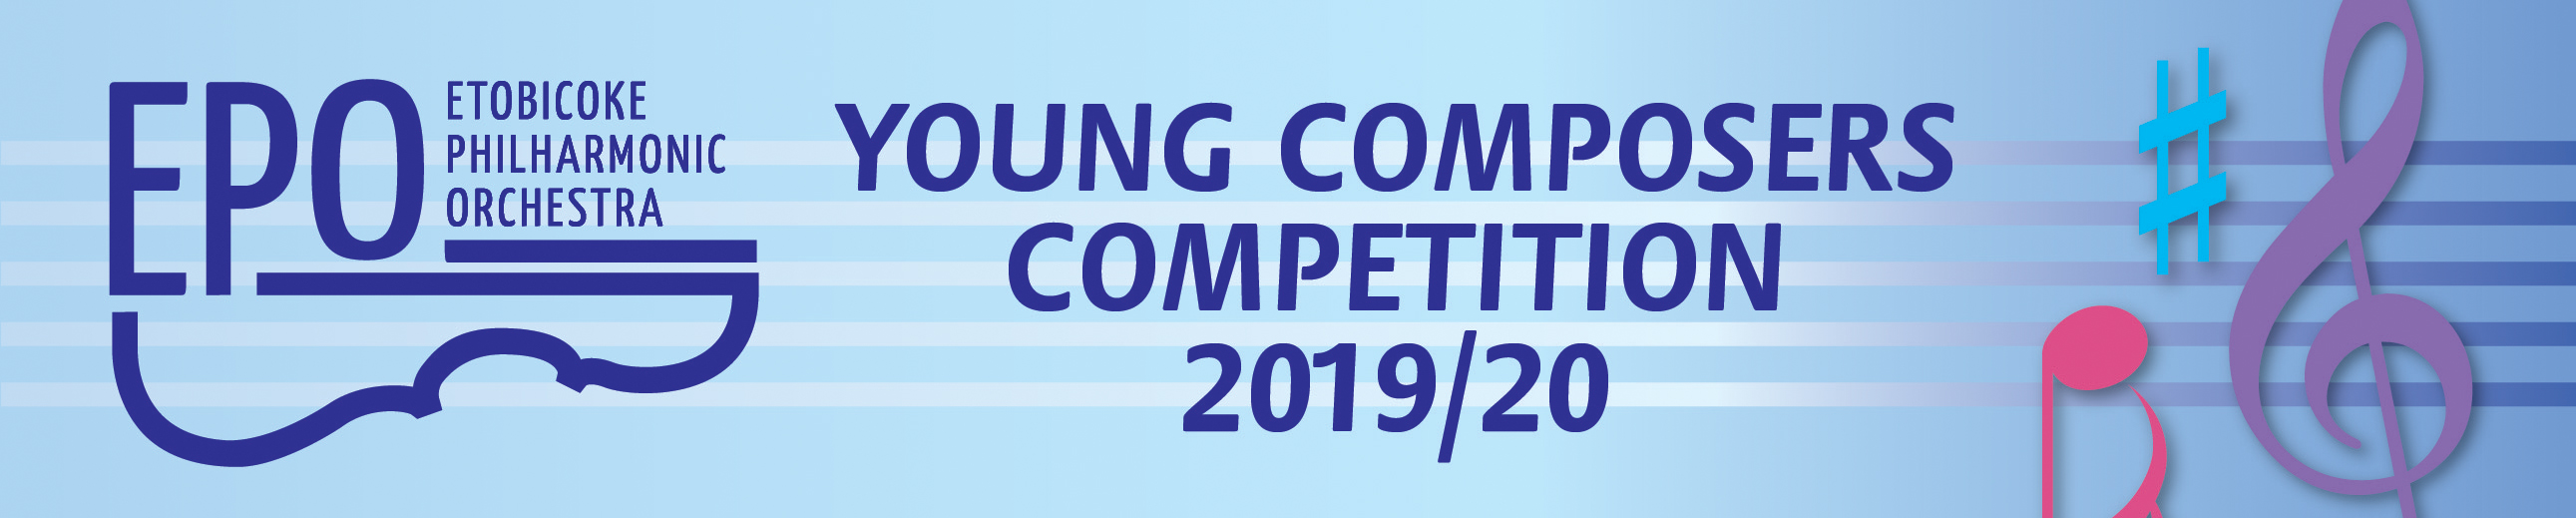 Young Composers Competition 2019